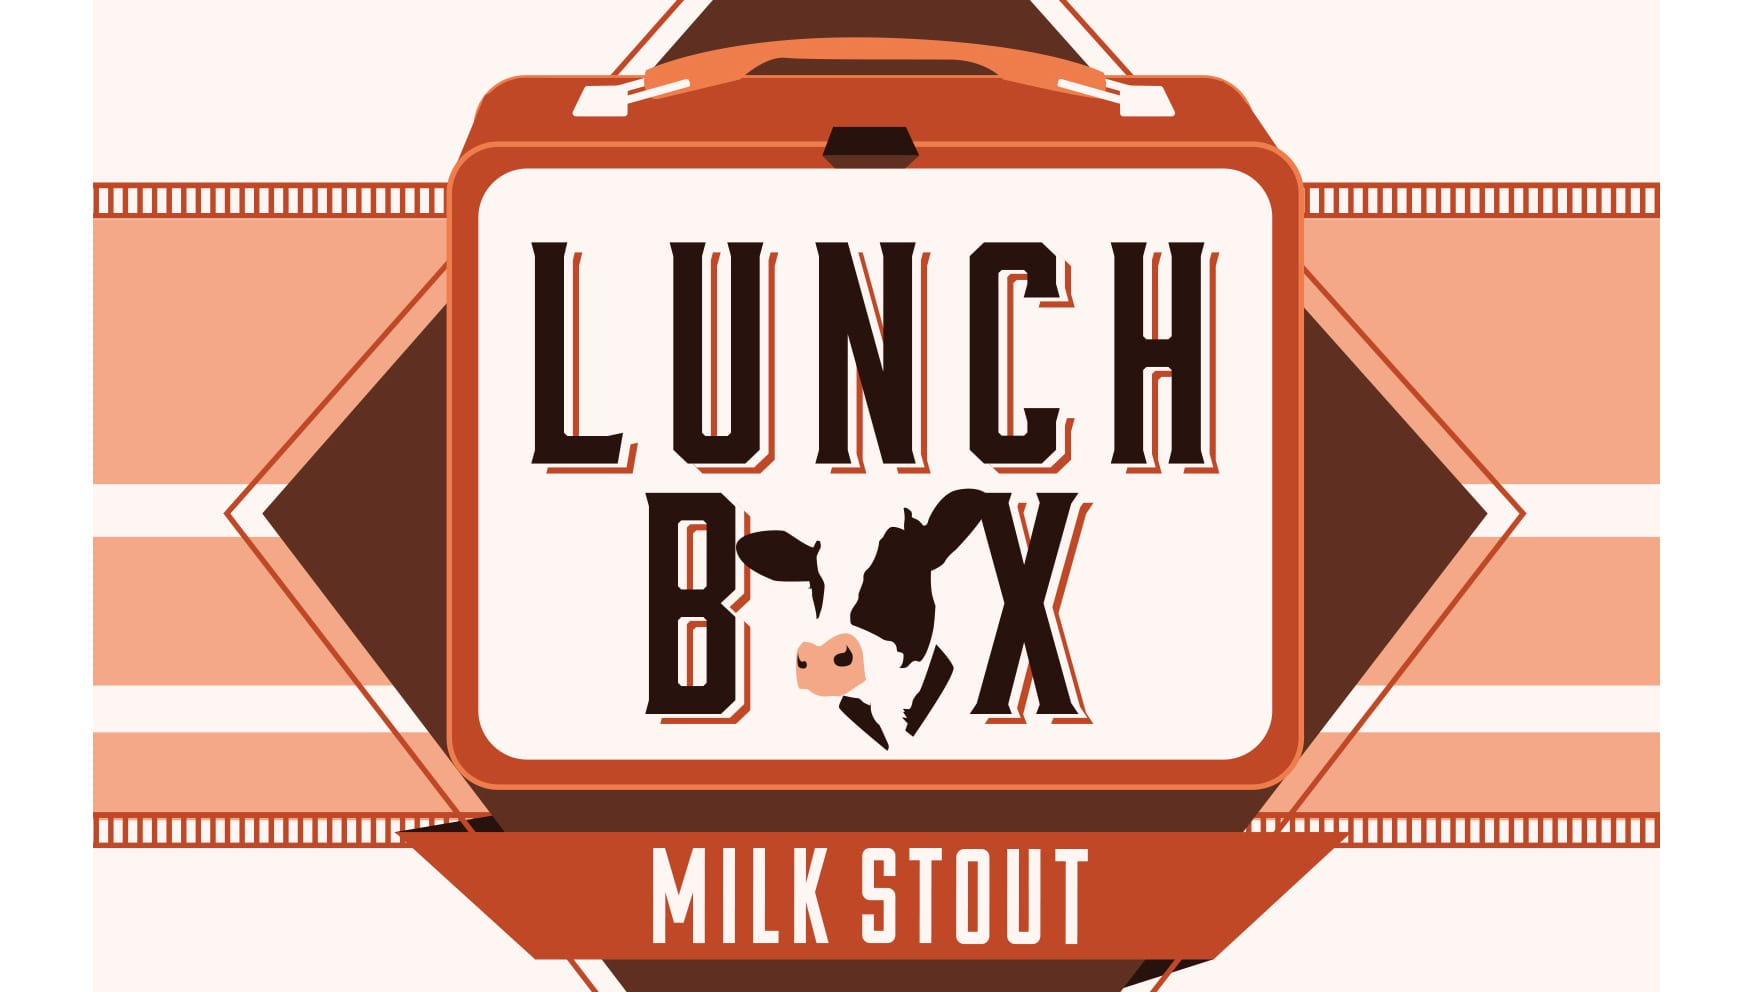 Cinder Block Brewery's Lunch Box Milk Stout